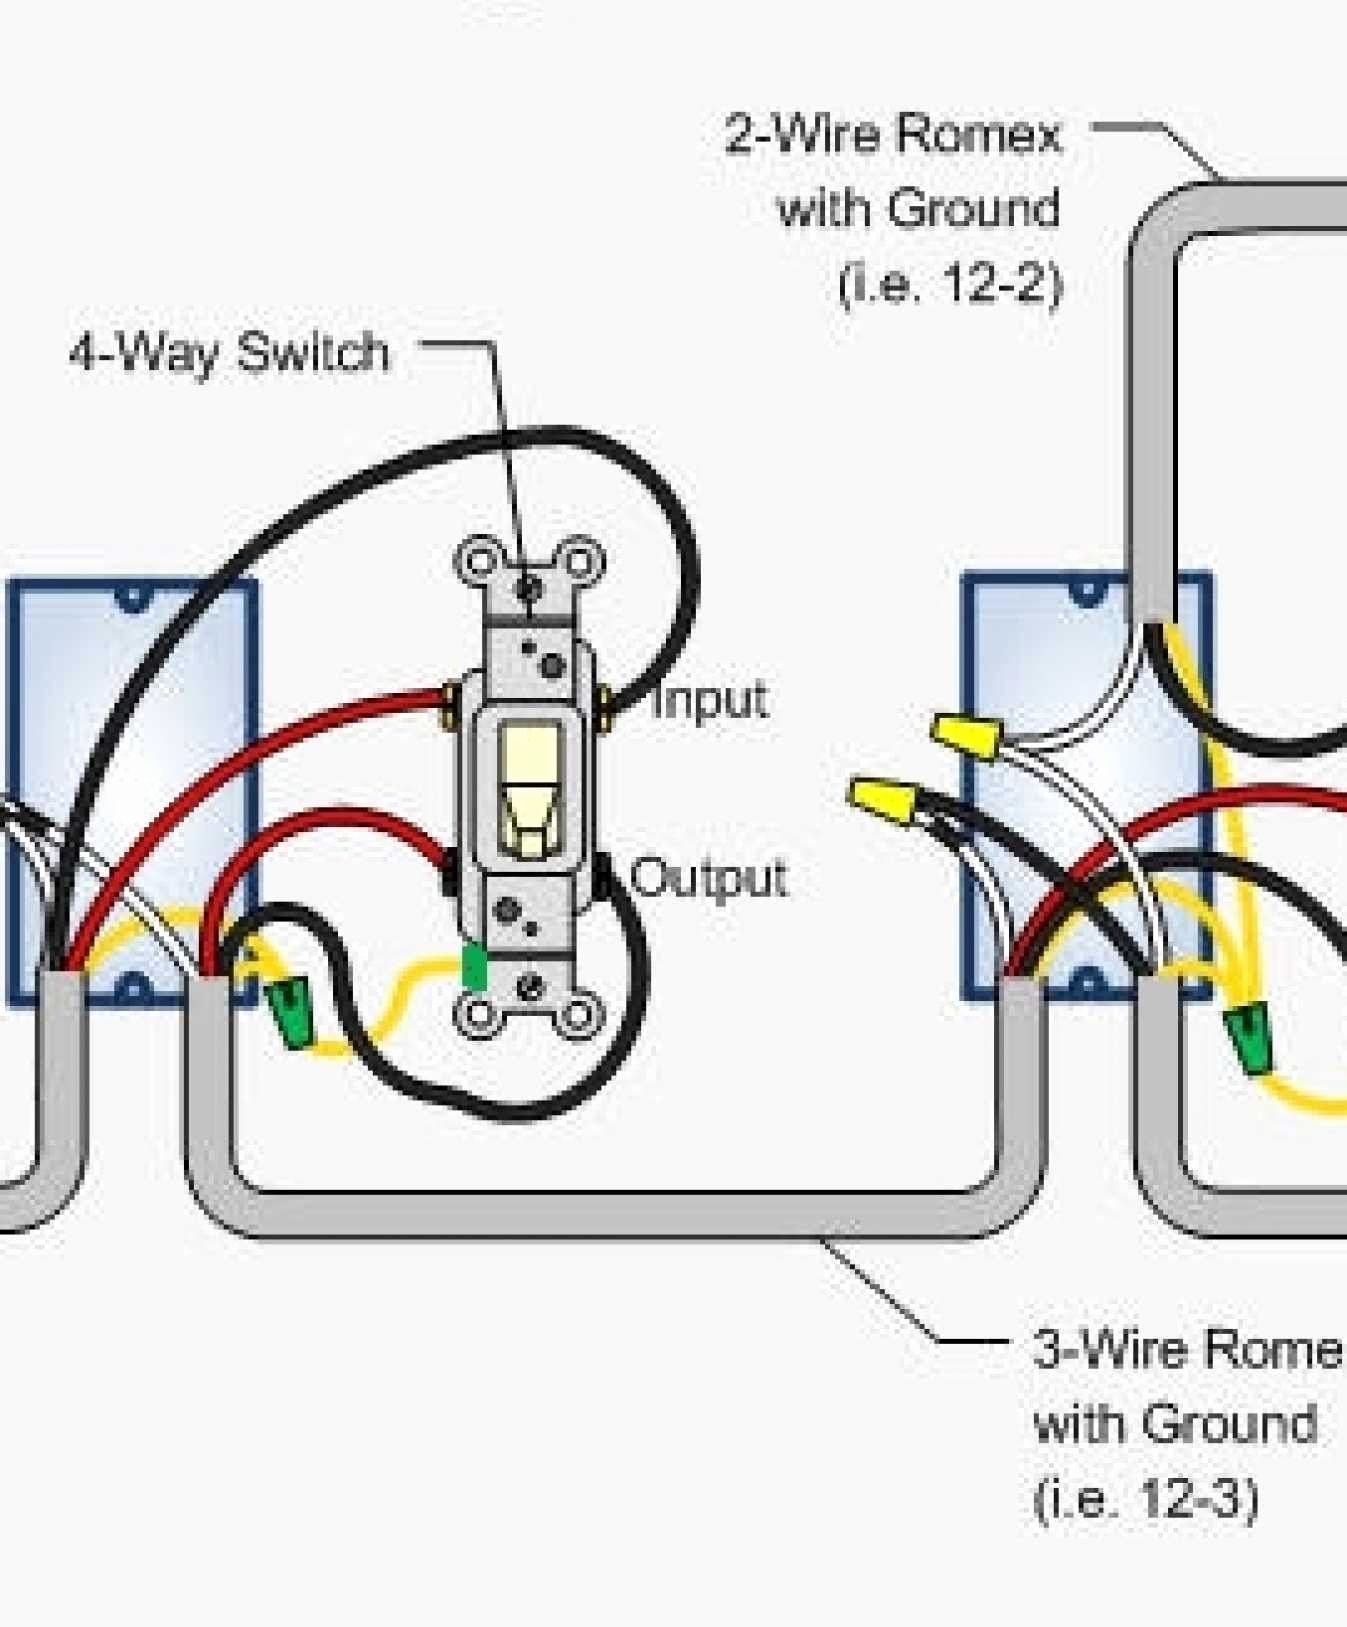 Lutron 4 Way Dimmer Wiring Diagram | Wiring Diagram - Lutron Maestro on leviton dimmer switch wiring diagram, single pole switch wiring diagram, slider dimmer switch diagram, lutron 4-way dimmer switch, leviton 4 way wiring diagram,